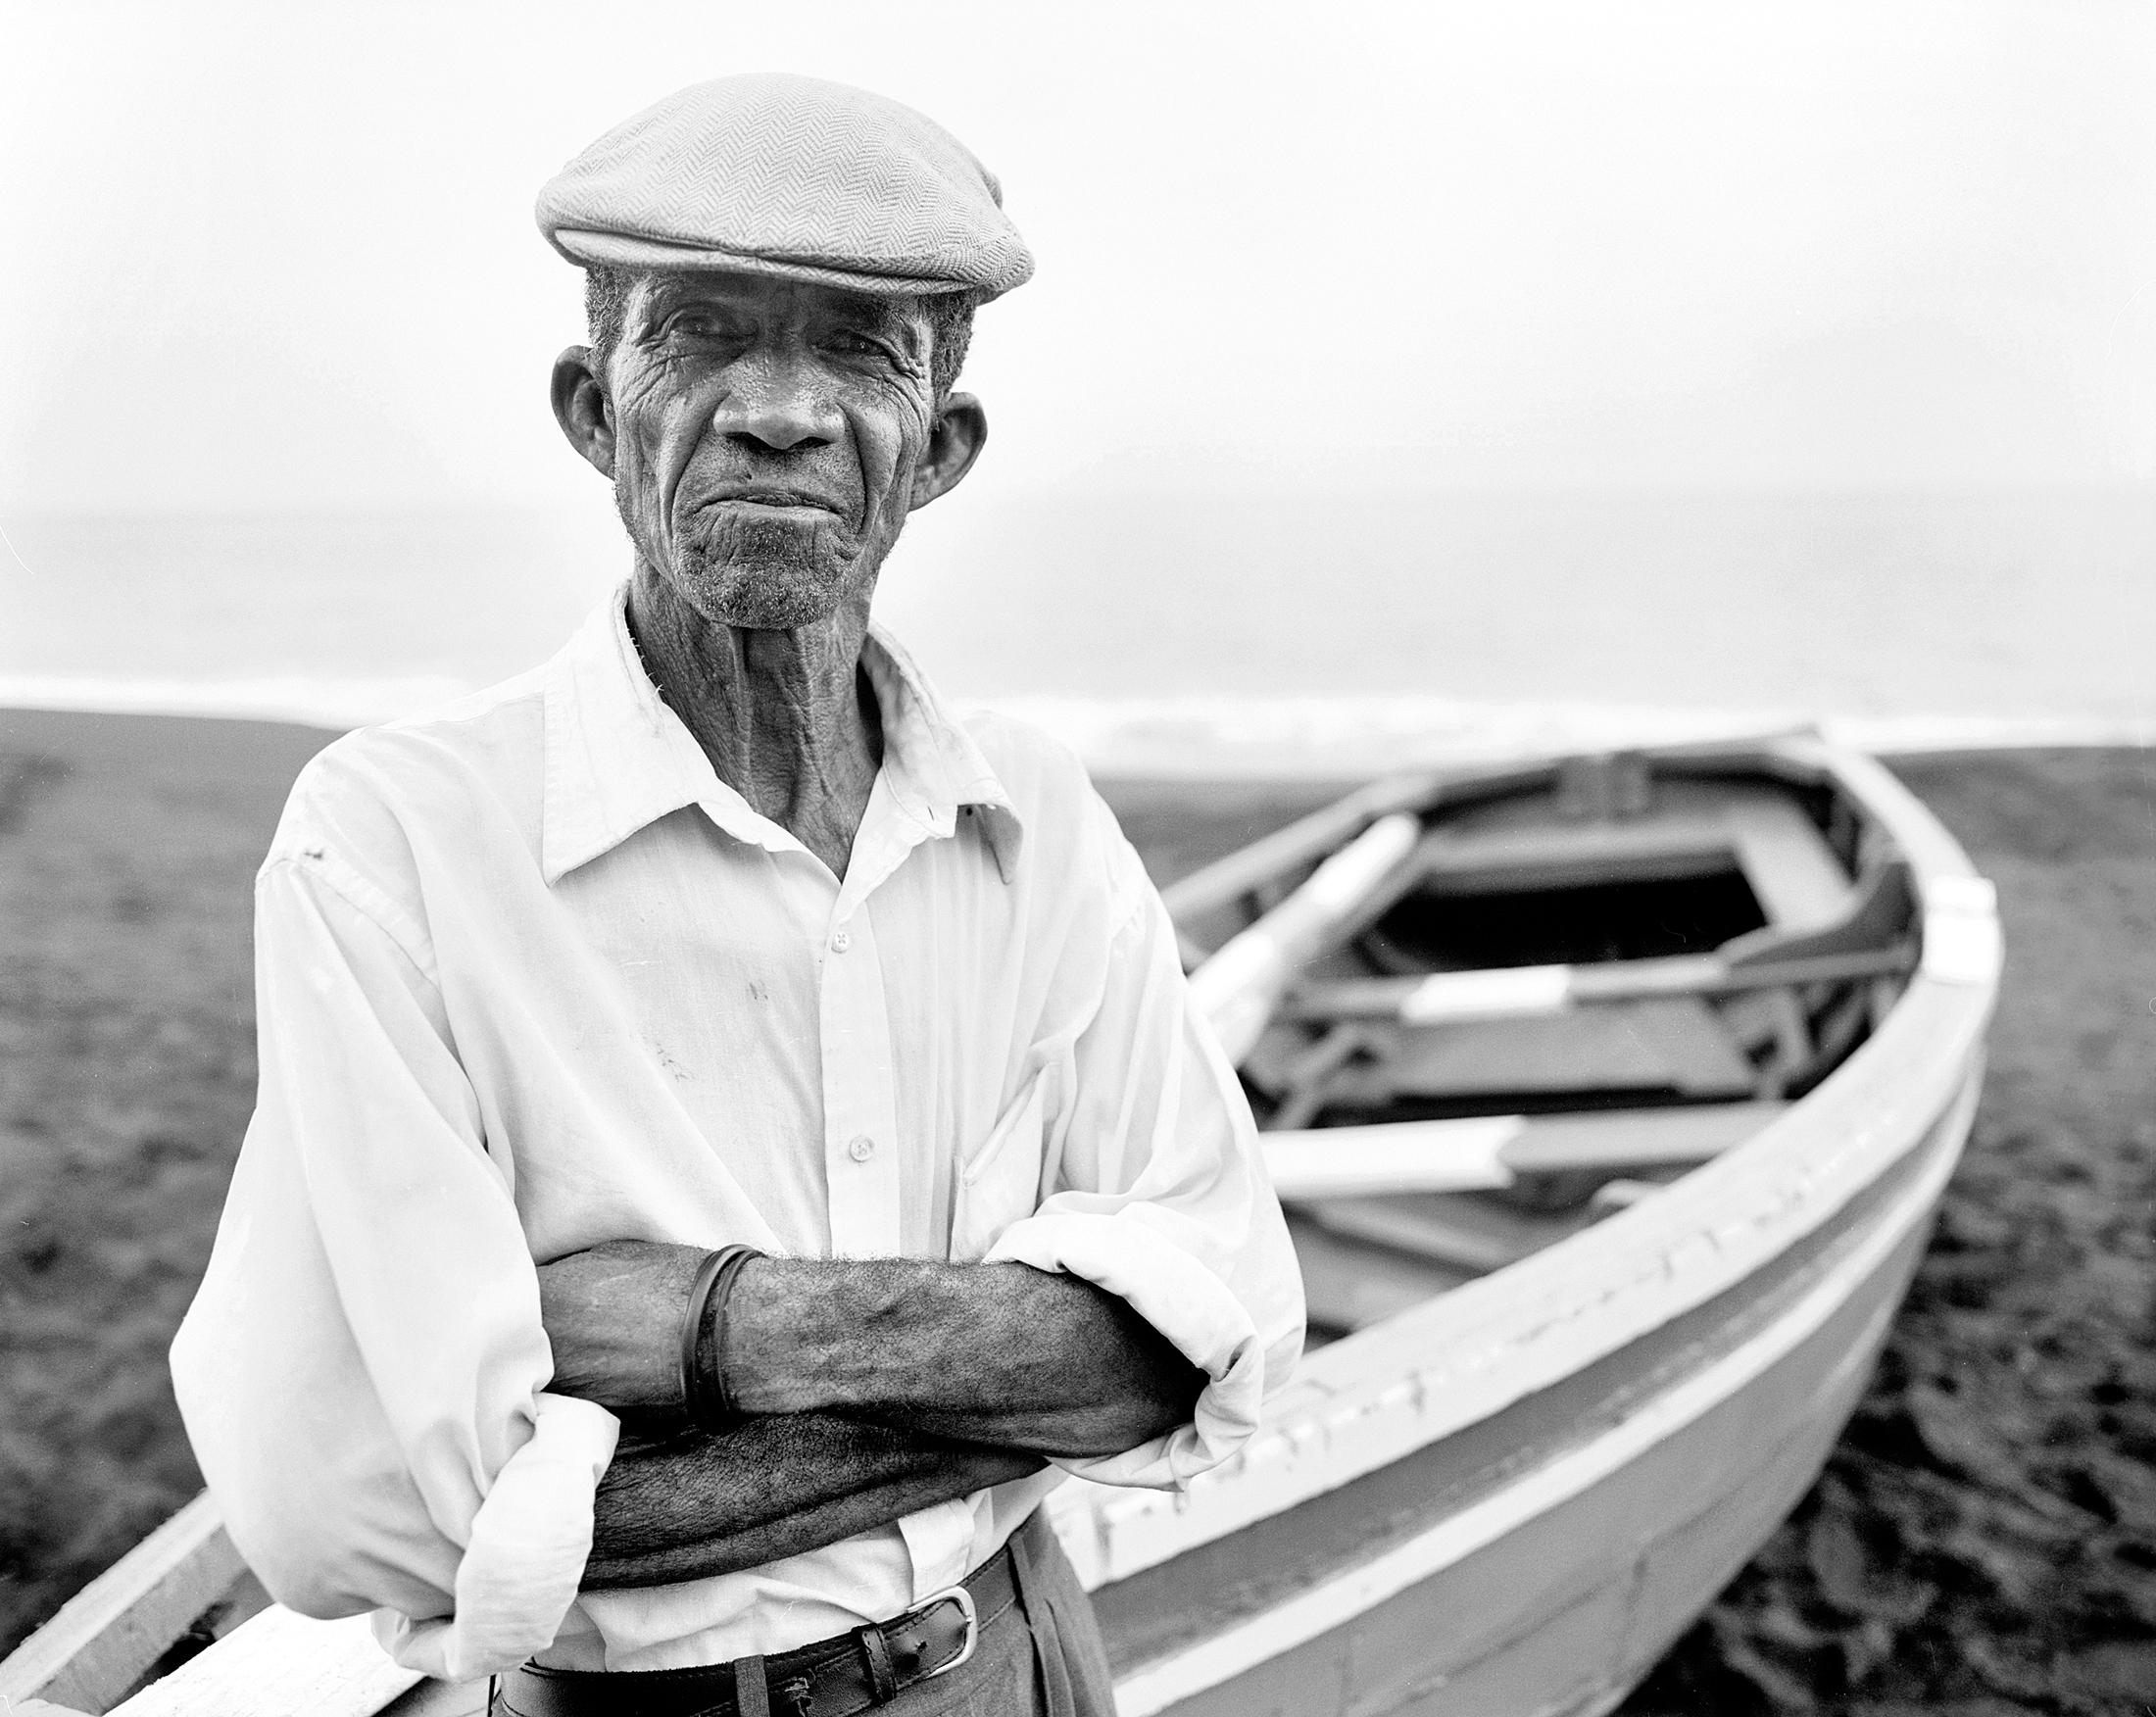 Manuel in front of his fishing boat on the beach of São Filipe. The attraction of traveling is the encounter along the way. It's the exchange with Locals and the opportunity to participate in their lives and traditions.